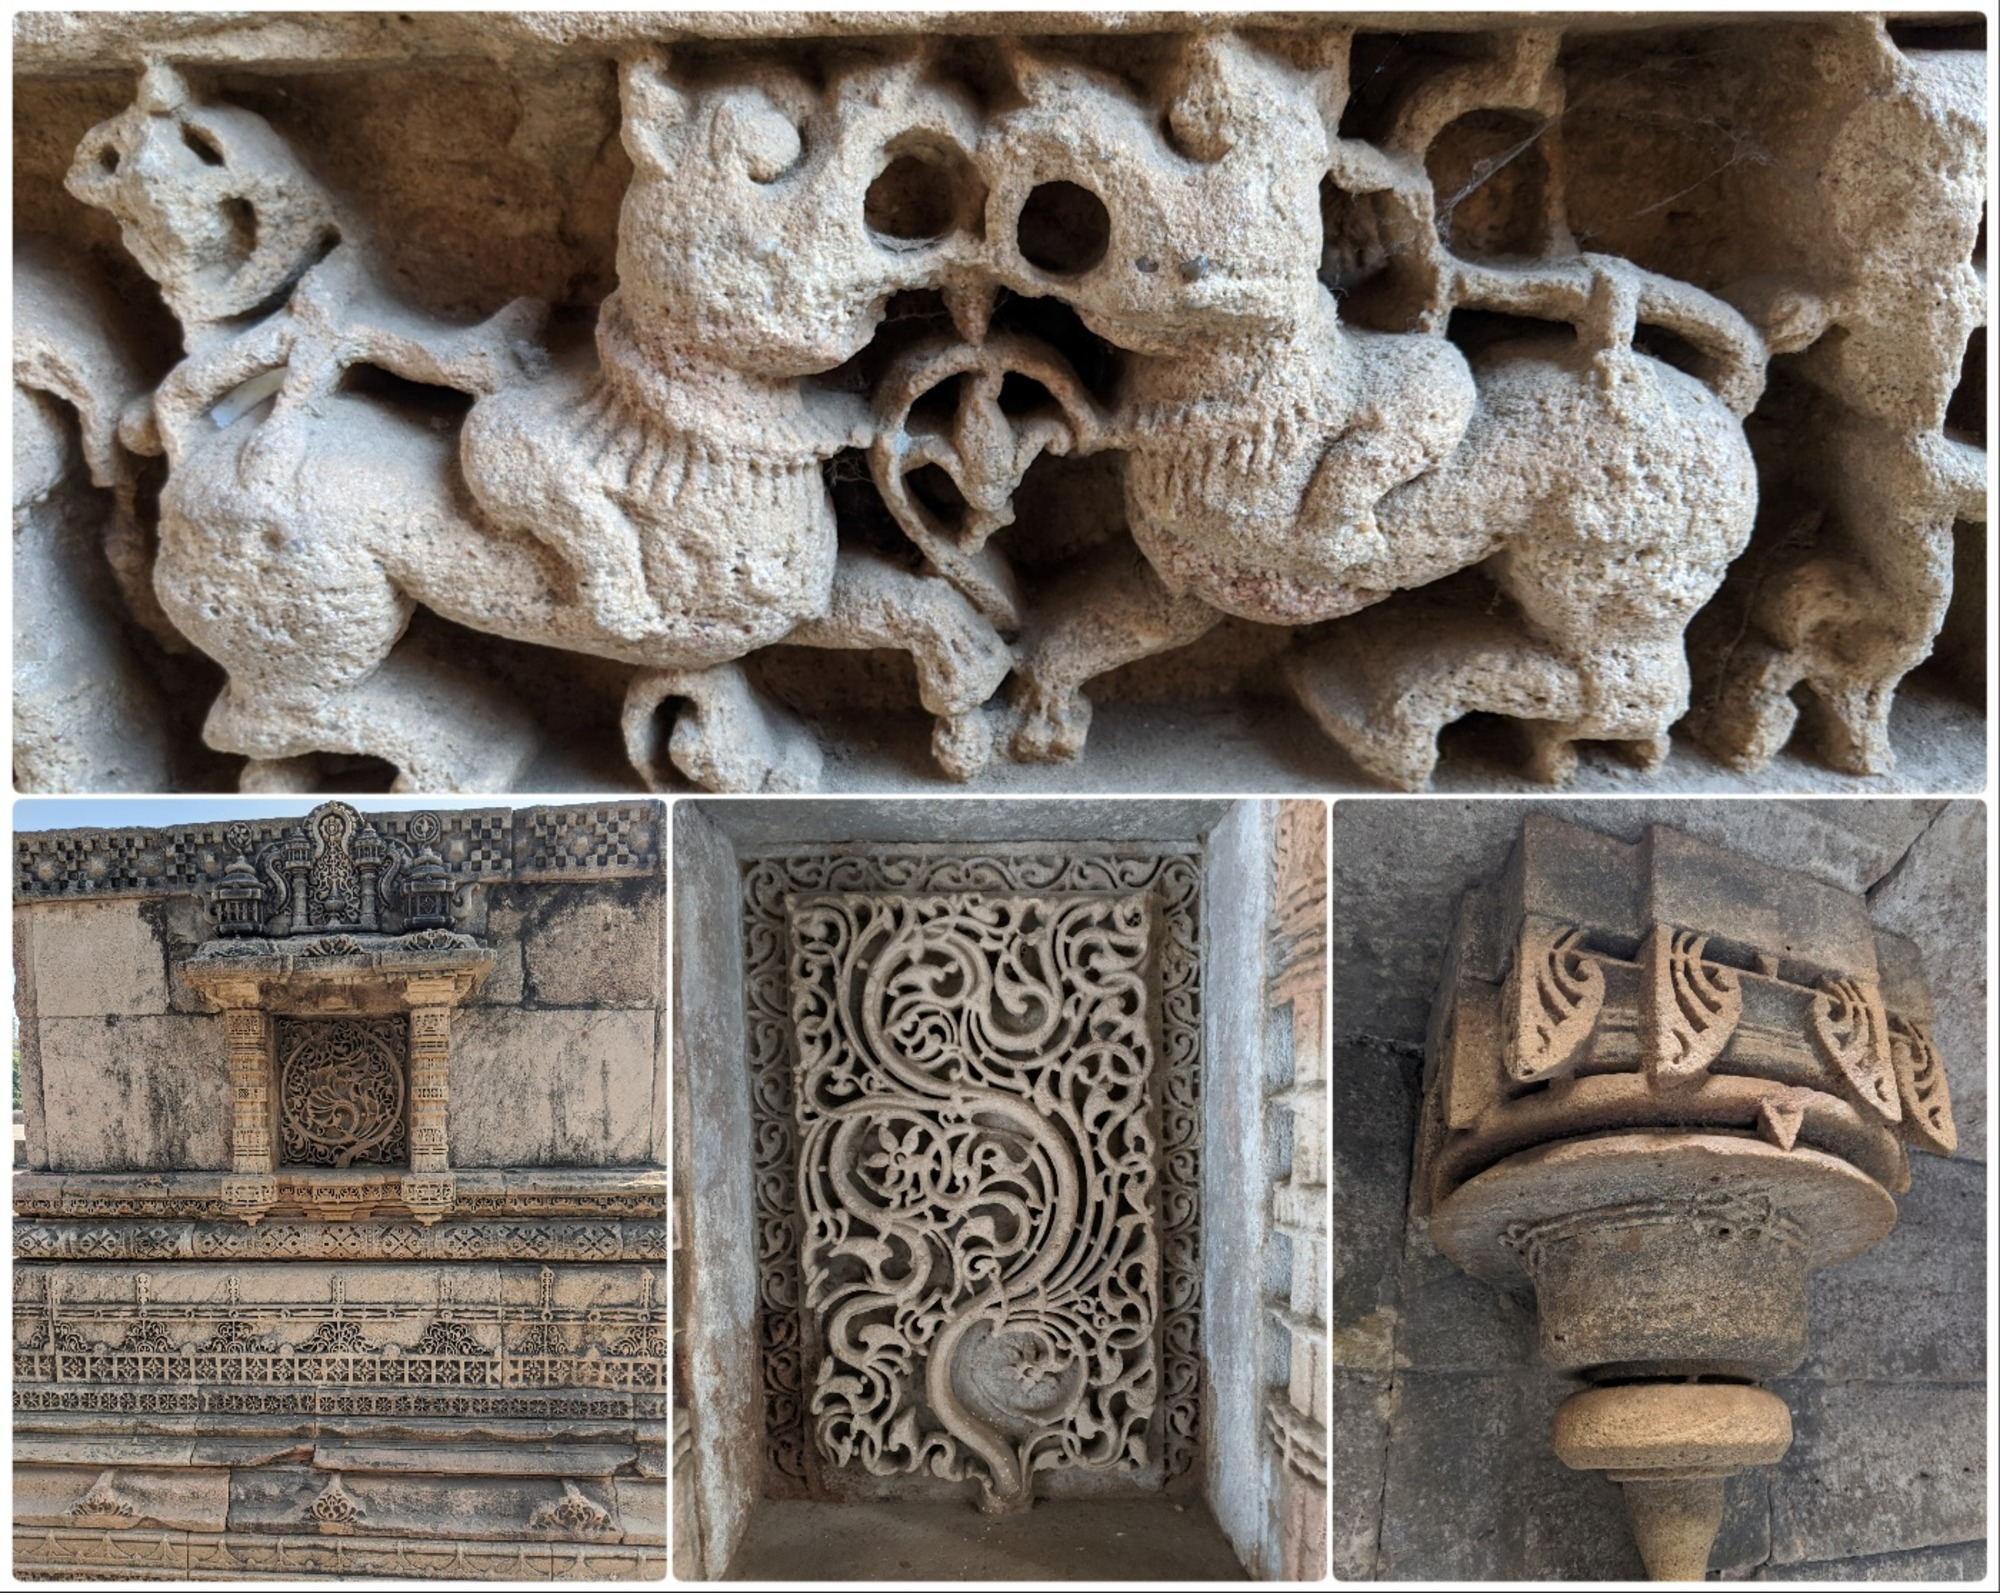 Intricately carved motifs can be seen everywhere along with animals and gods